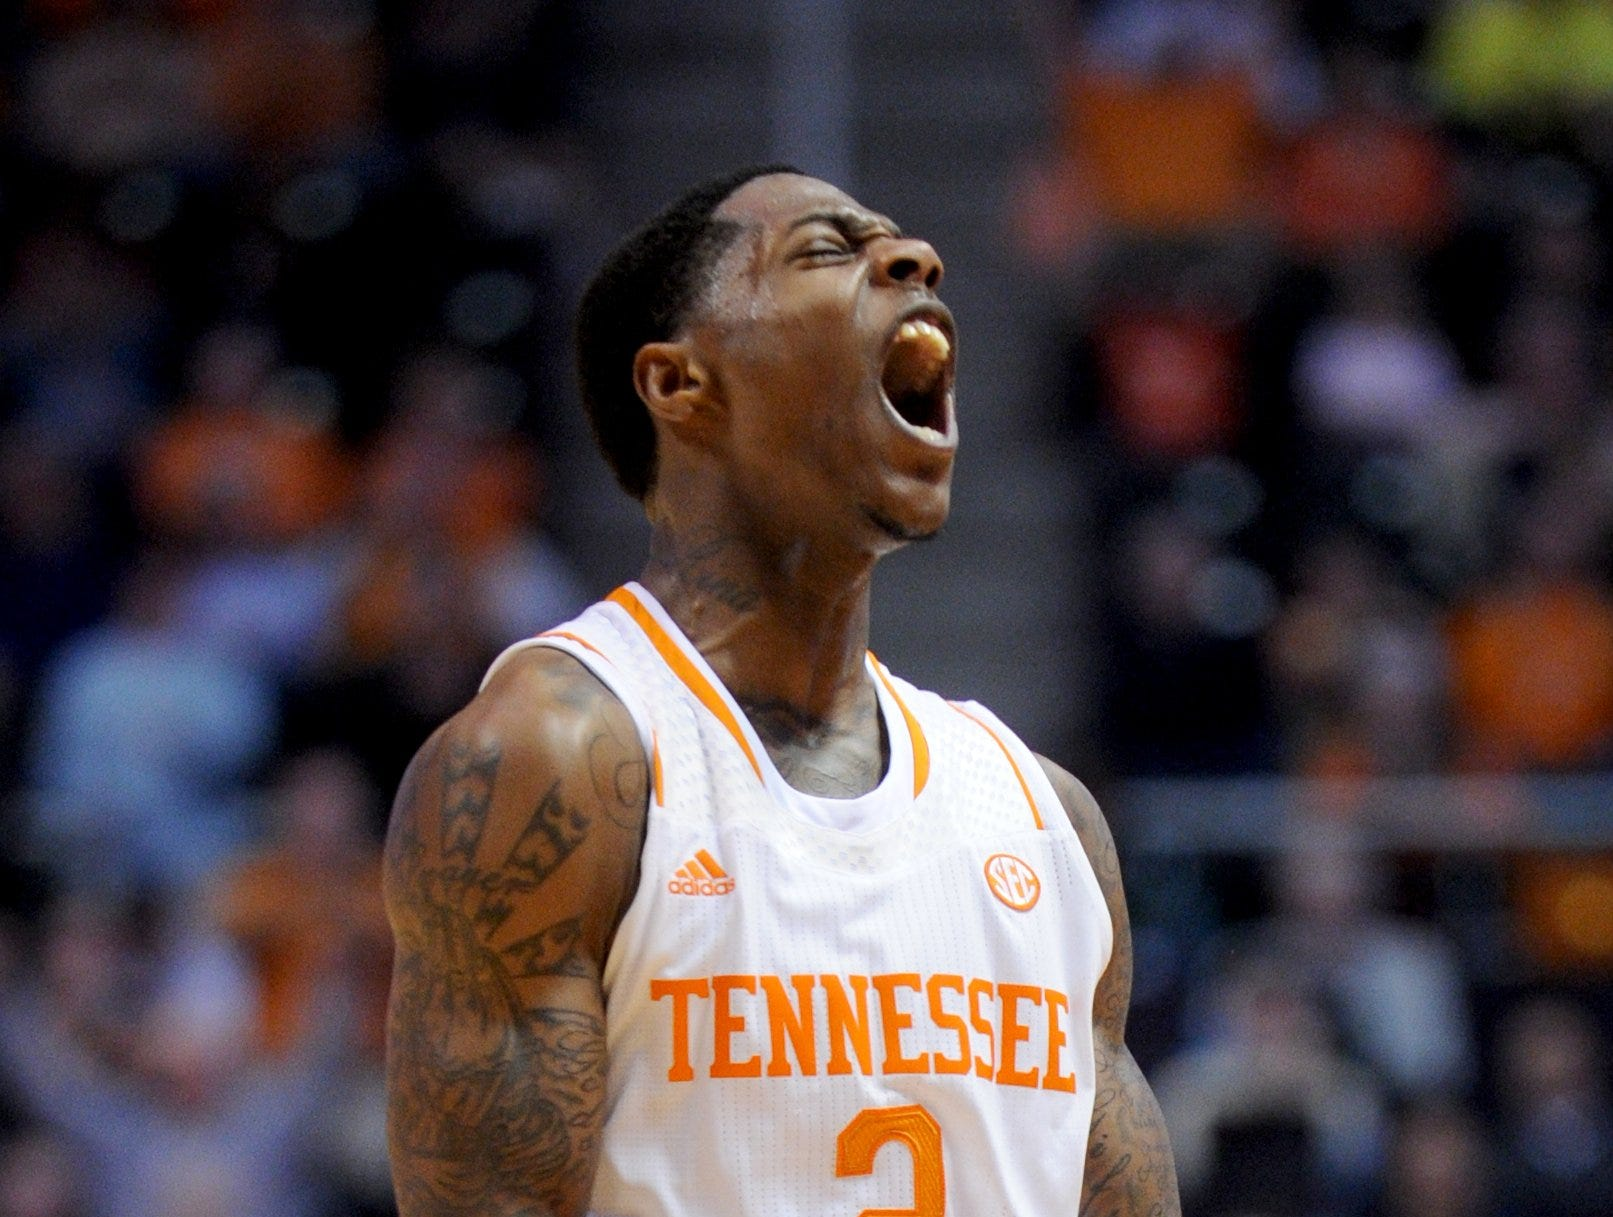 Tennessee's Antonio Barton reacts after hitting a basket to help UT gain the lead over USC Upstate during the second half at Thompson-Boling Arena in Knoxville, Saturday, Nov. 16, 2013. UT won the game, 74-65.